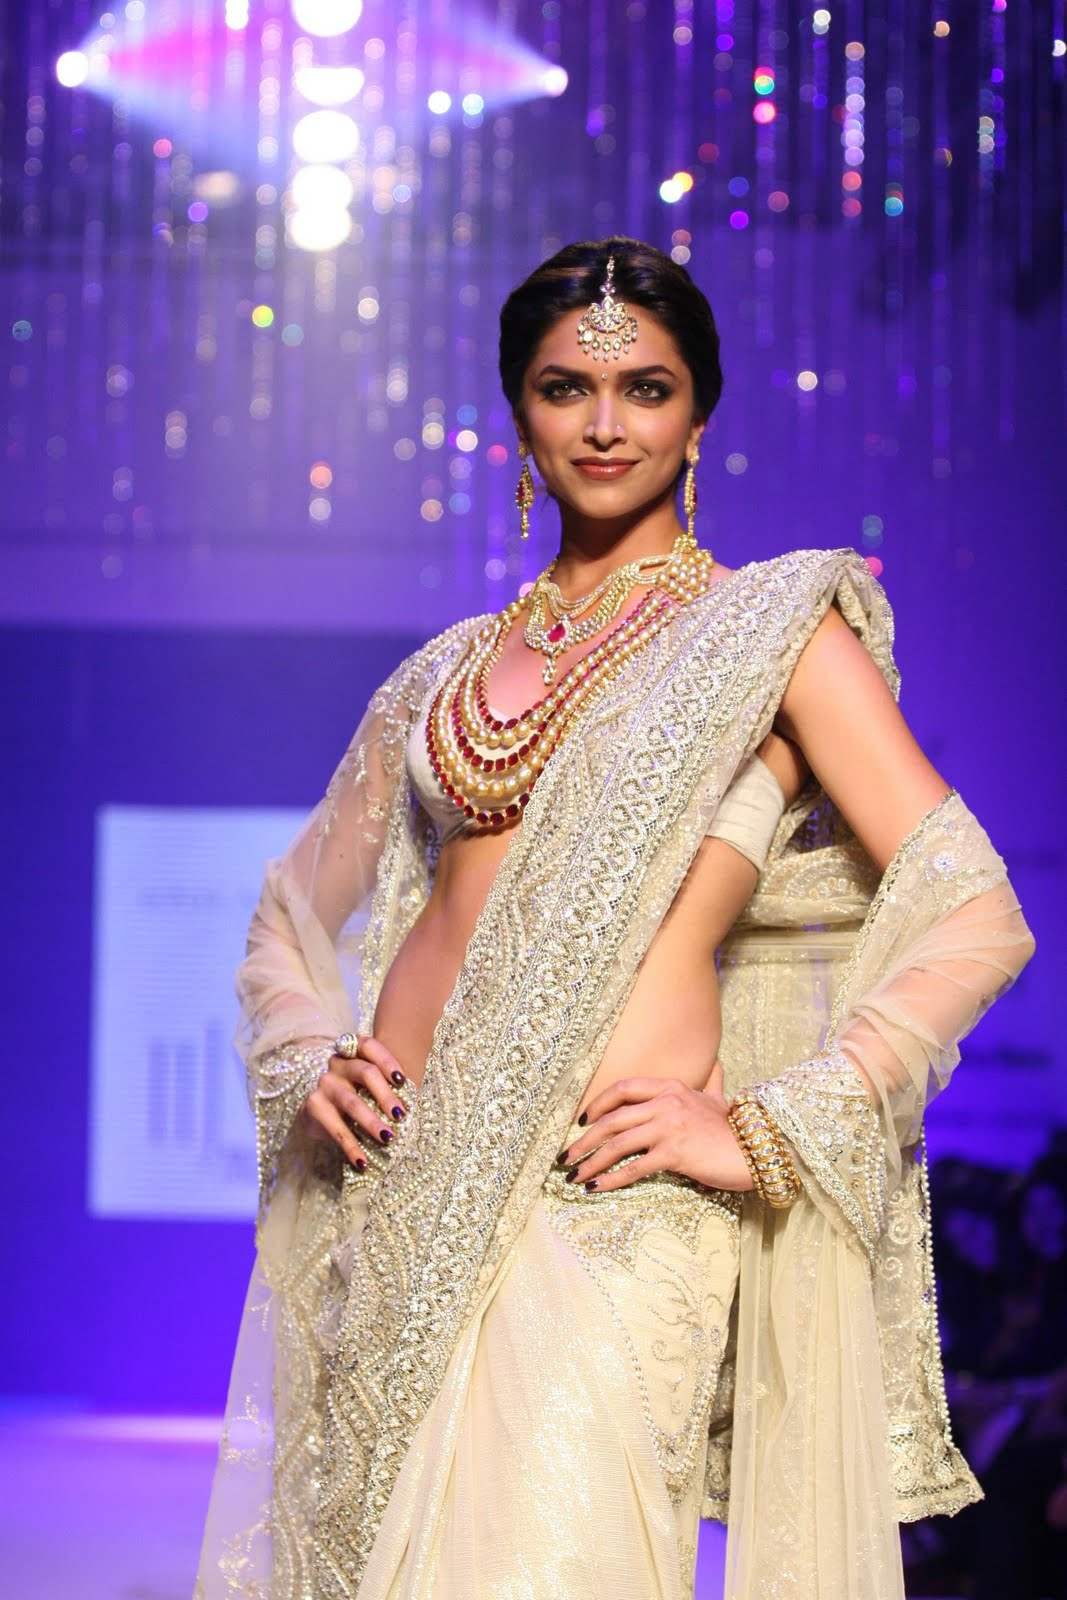 Deepika Padukone In Wedding Dresses 2011 | Guys Fashion ...